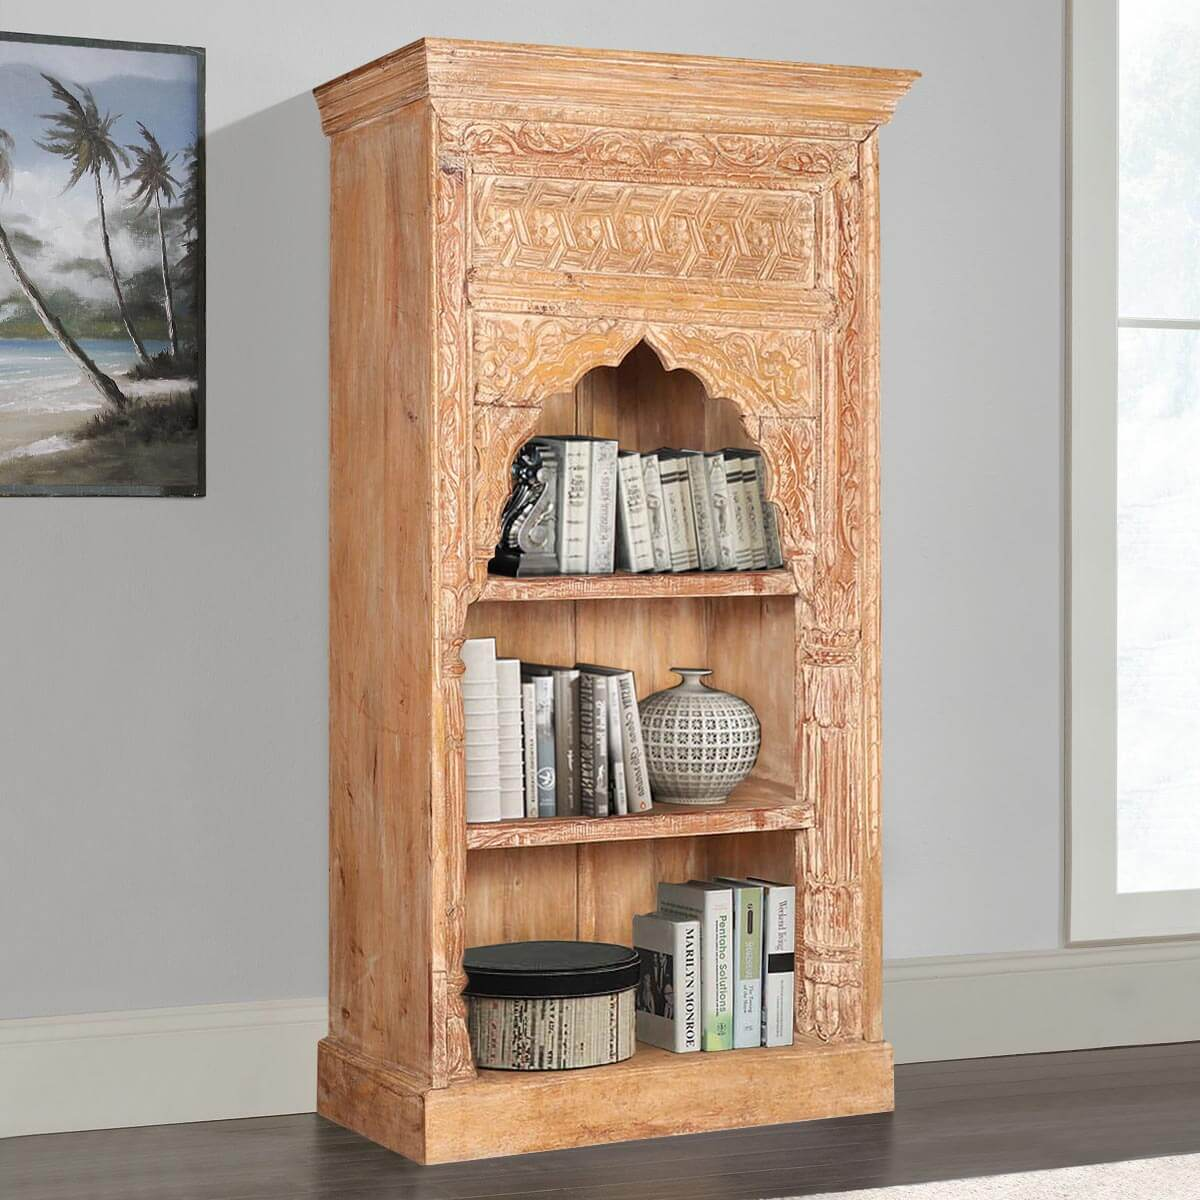 Alluwe Rustic Reclaimed Wood Hand Carved Arch Bookcase